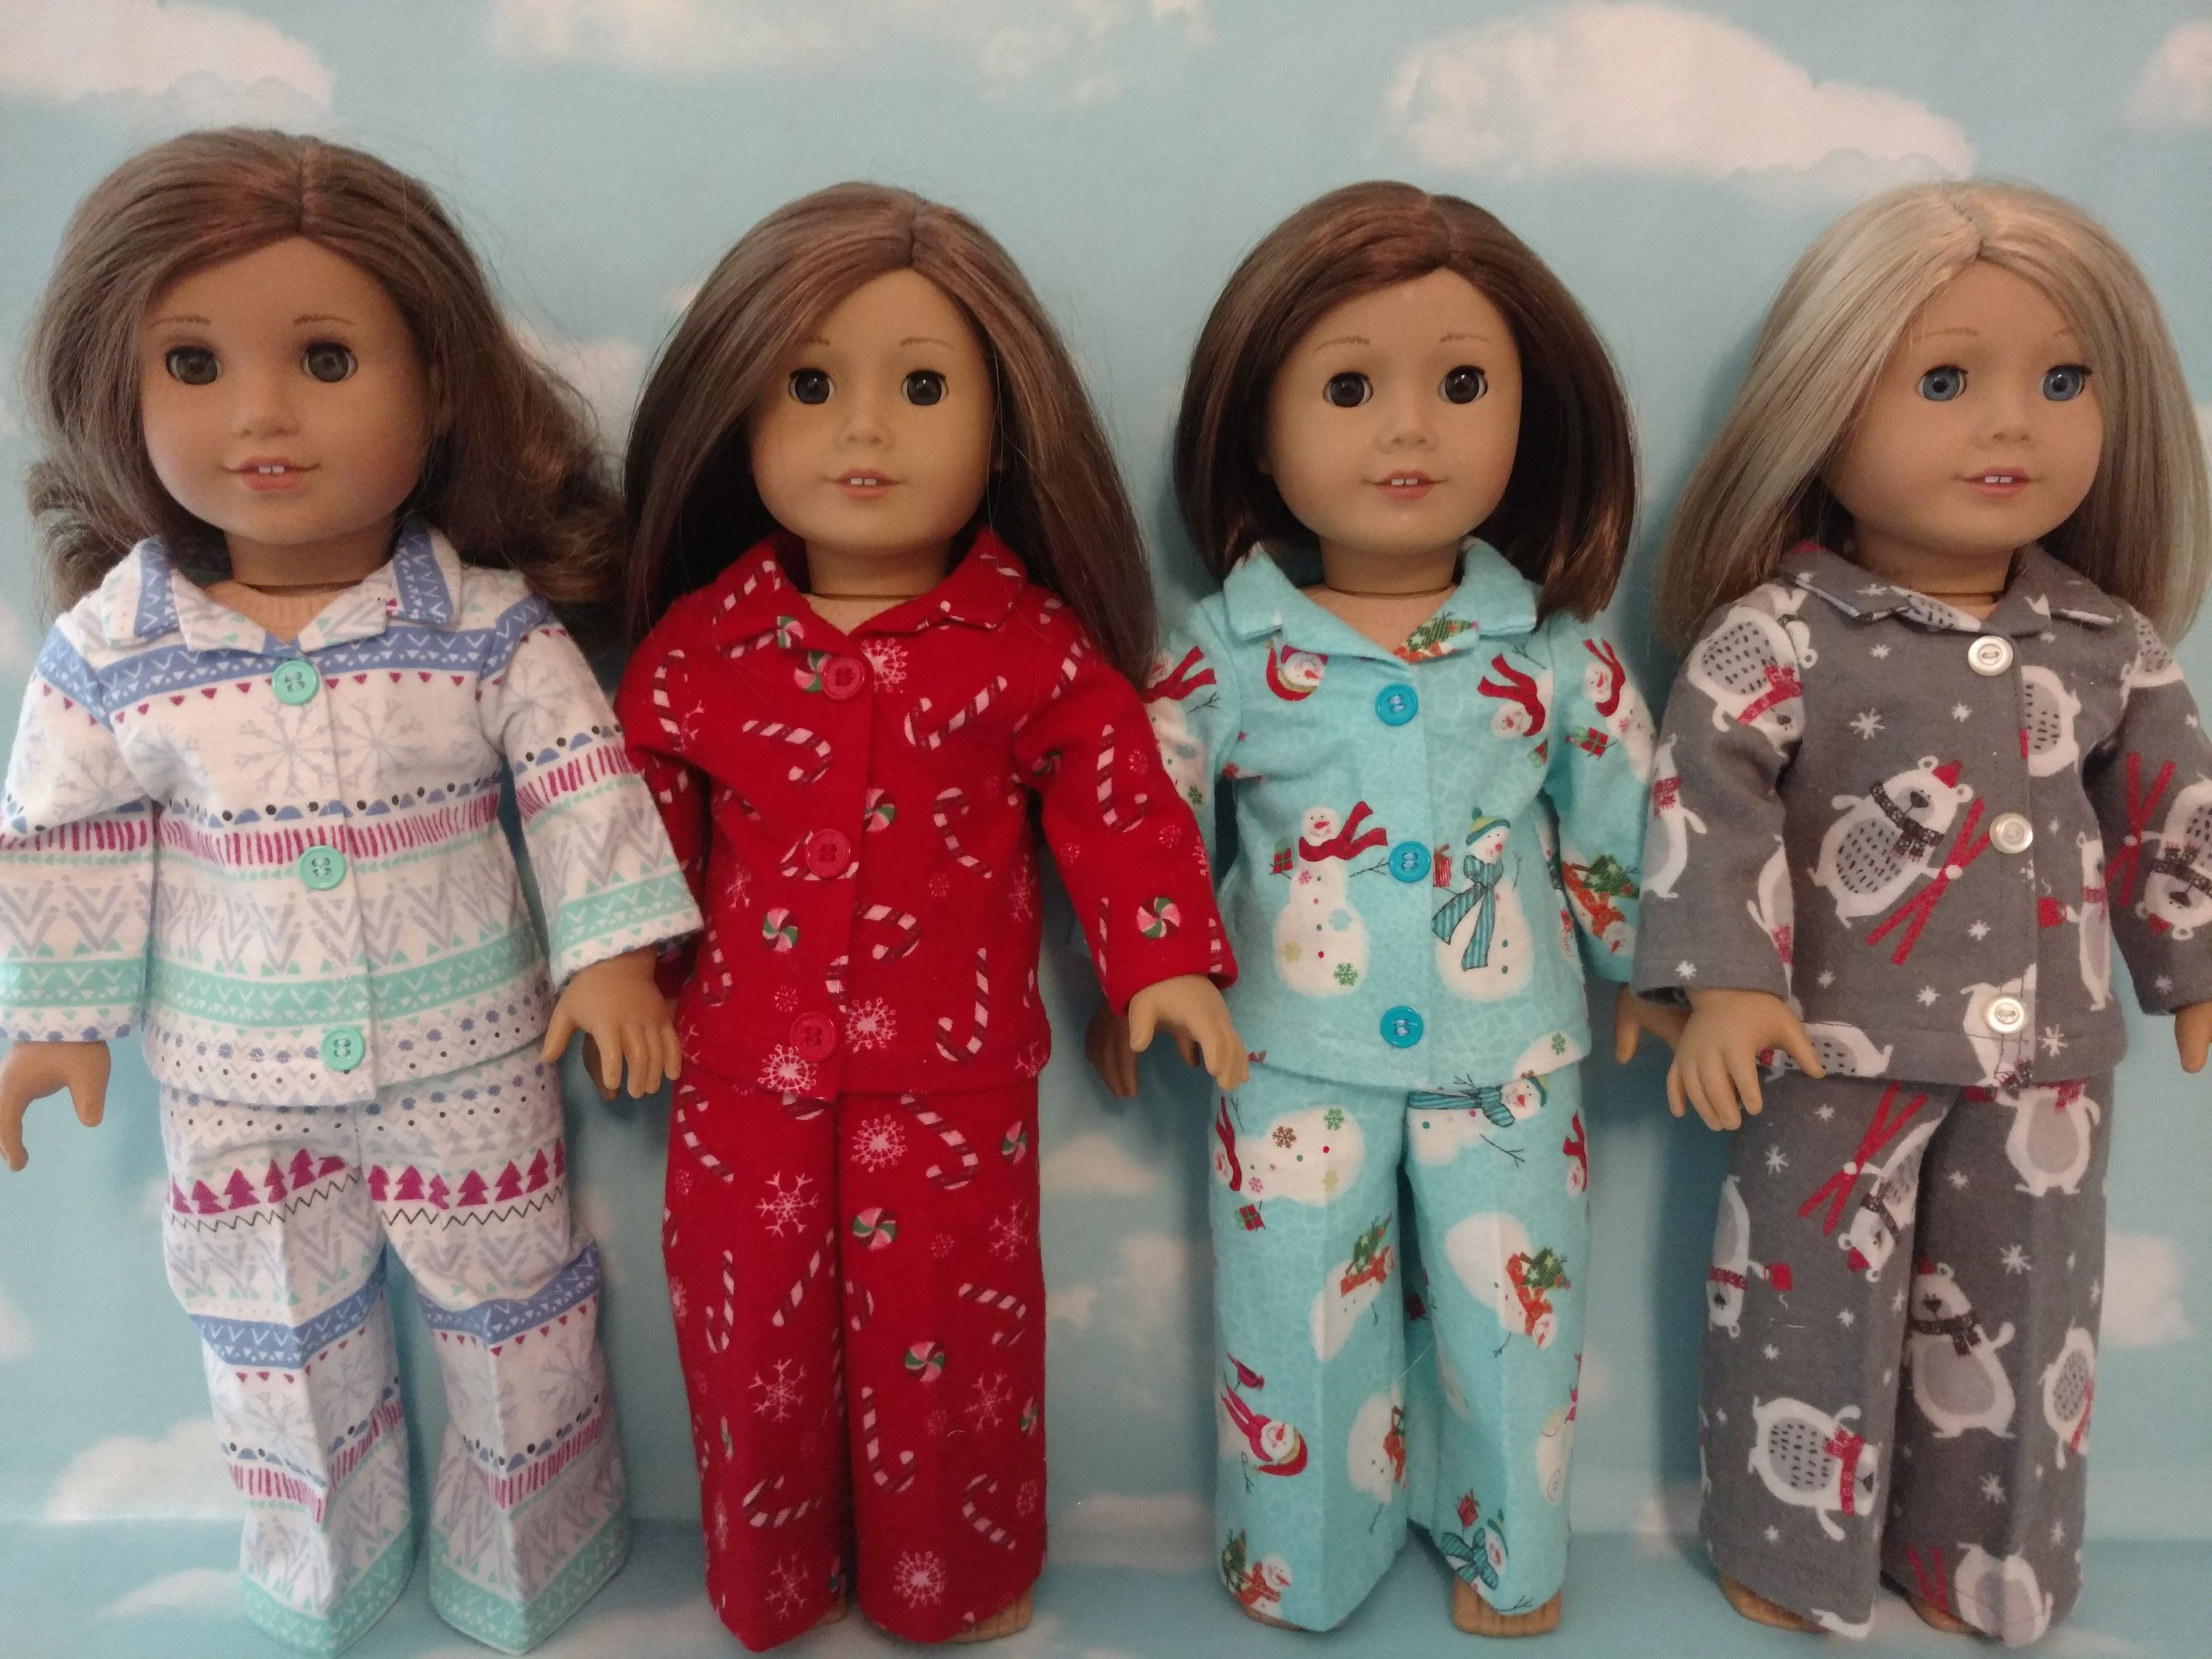 18 inch doll clothes, Christmas Pajamas fits 18 American Girl Dolls 422abcd #18inchdollsandclothes